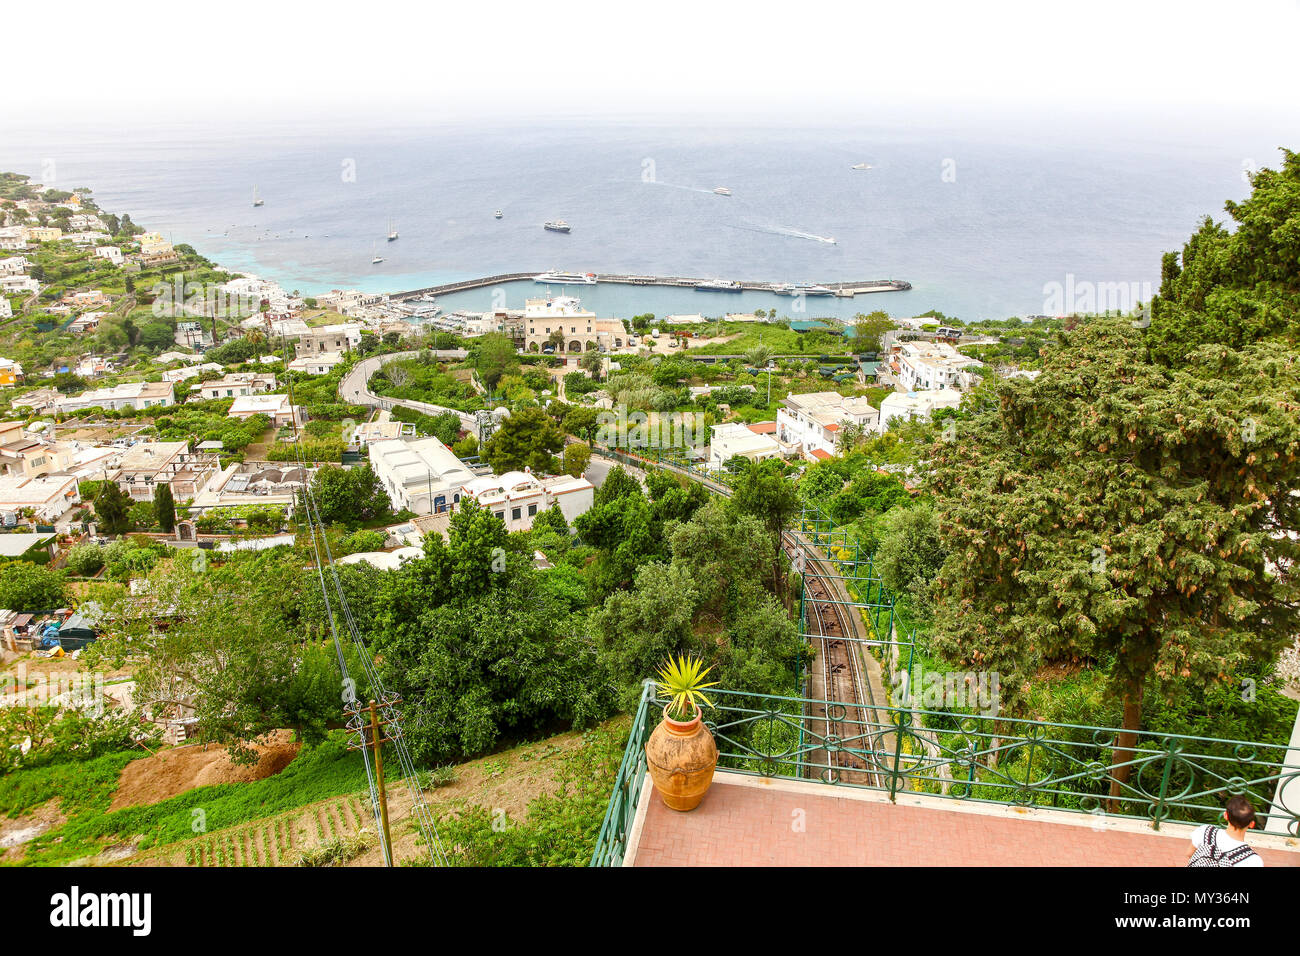 The view from the funicular railway overlooking the bay on the island of Capri, Campania, Italy - Stock Image